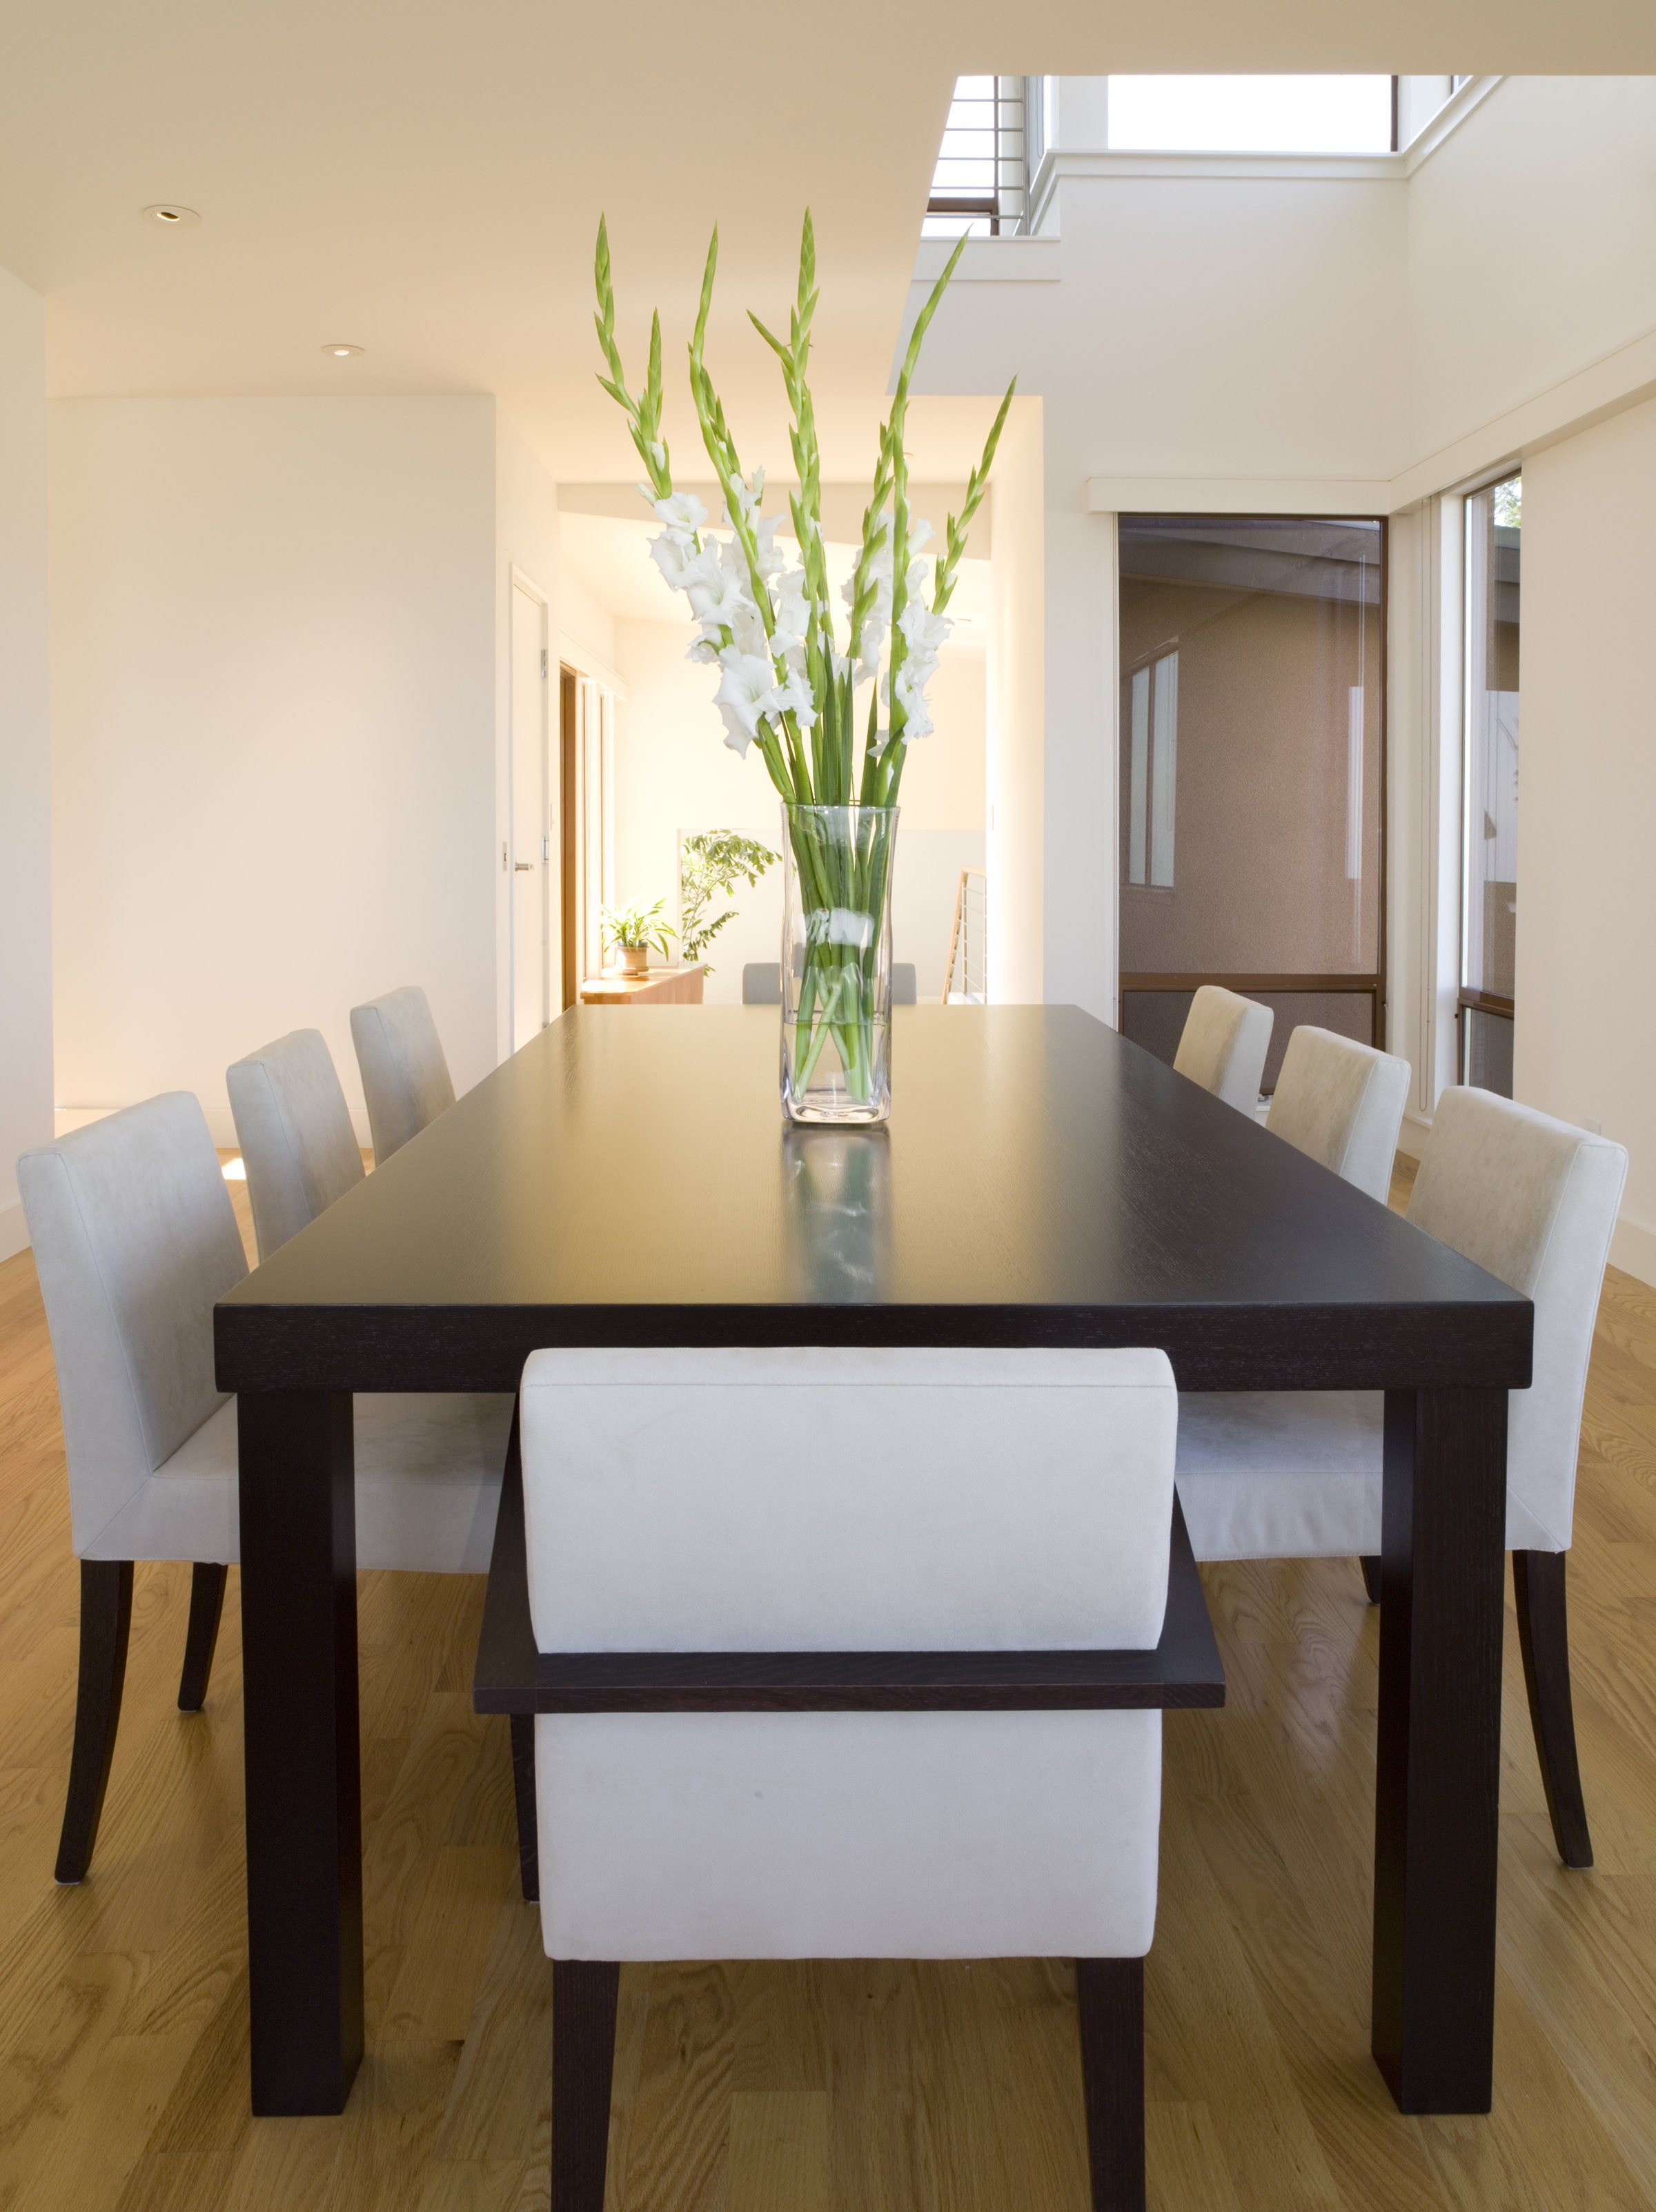 Light Filled Modern Dining Room With Sleek Dining Set (Image 9 of 30)